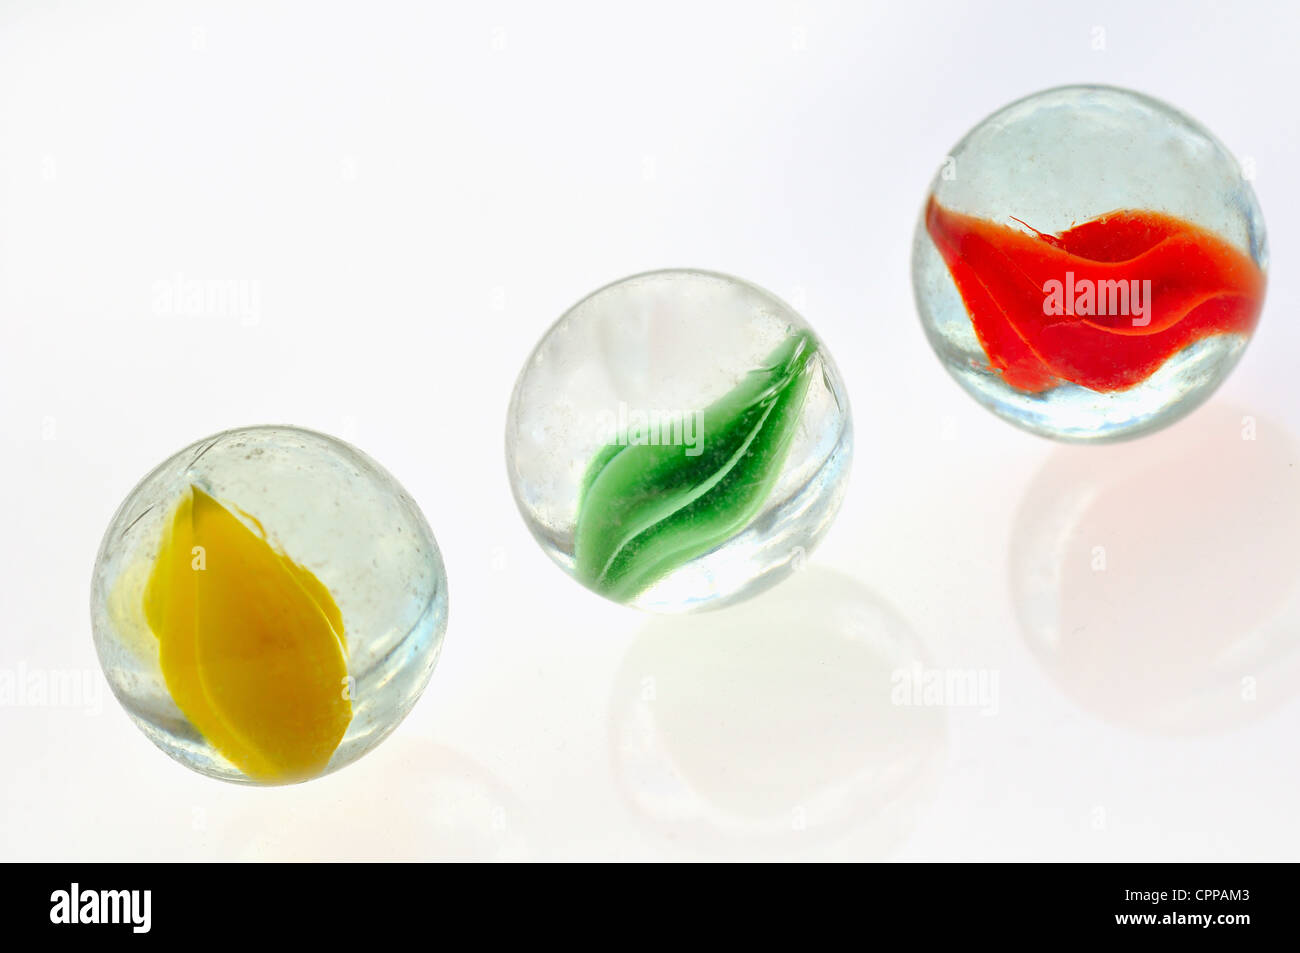 Three marbles on white background - Stock Image